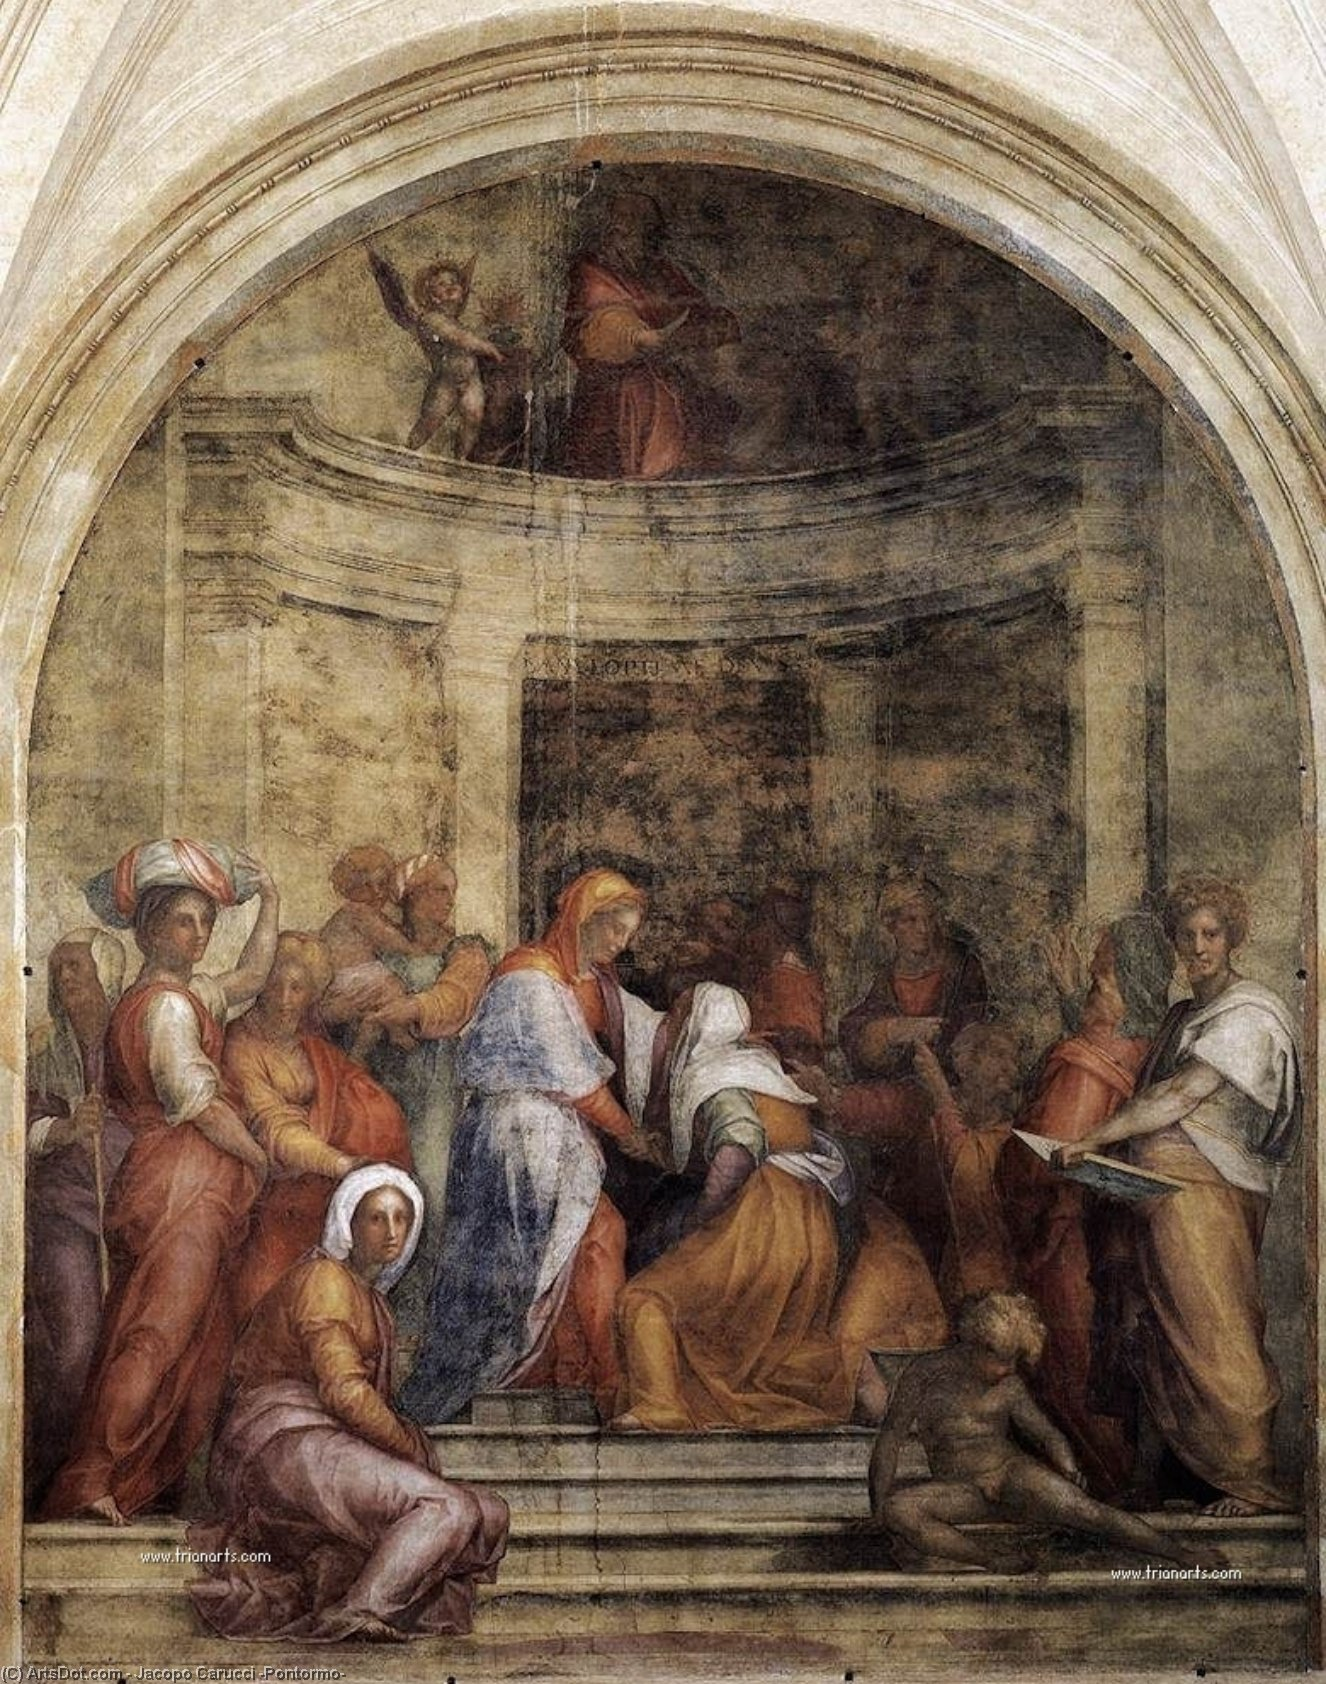 Wikioo.org - The Encyclopedia of Fine Arts - Painting, Artwork by Jacopo Carucci (Pontormo) - Visitation